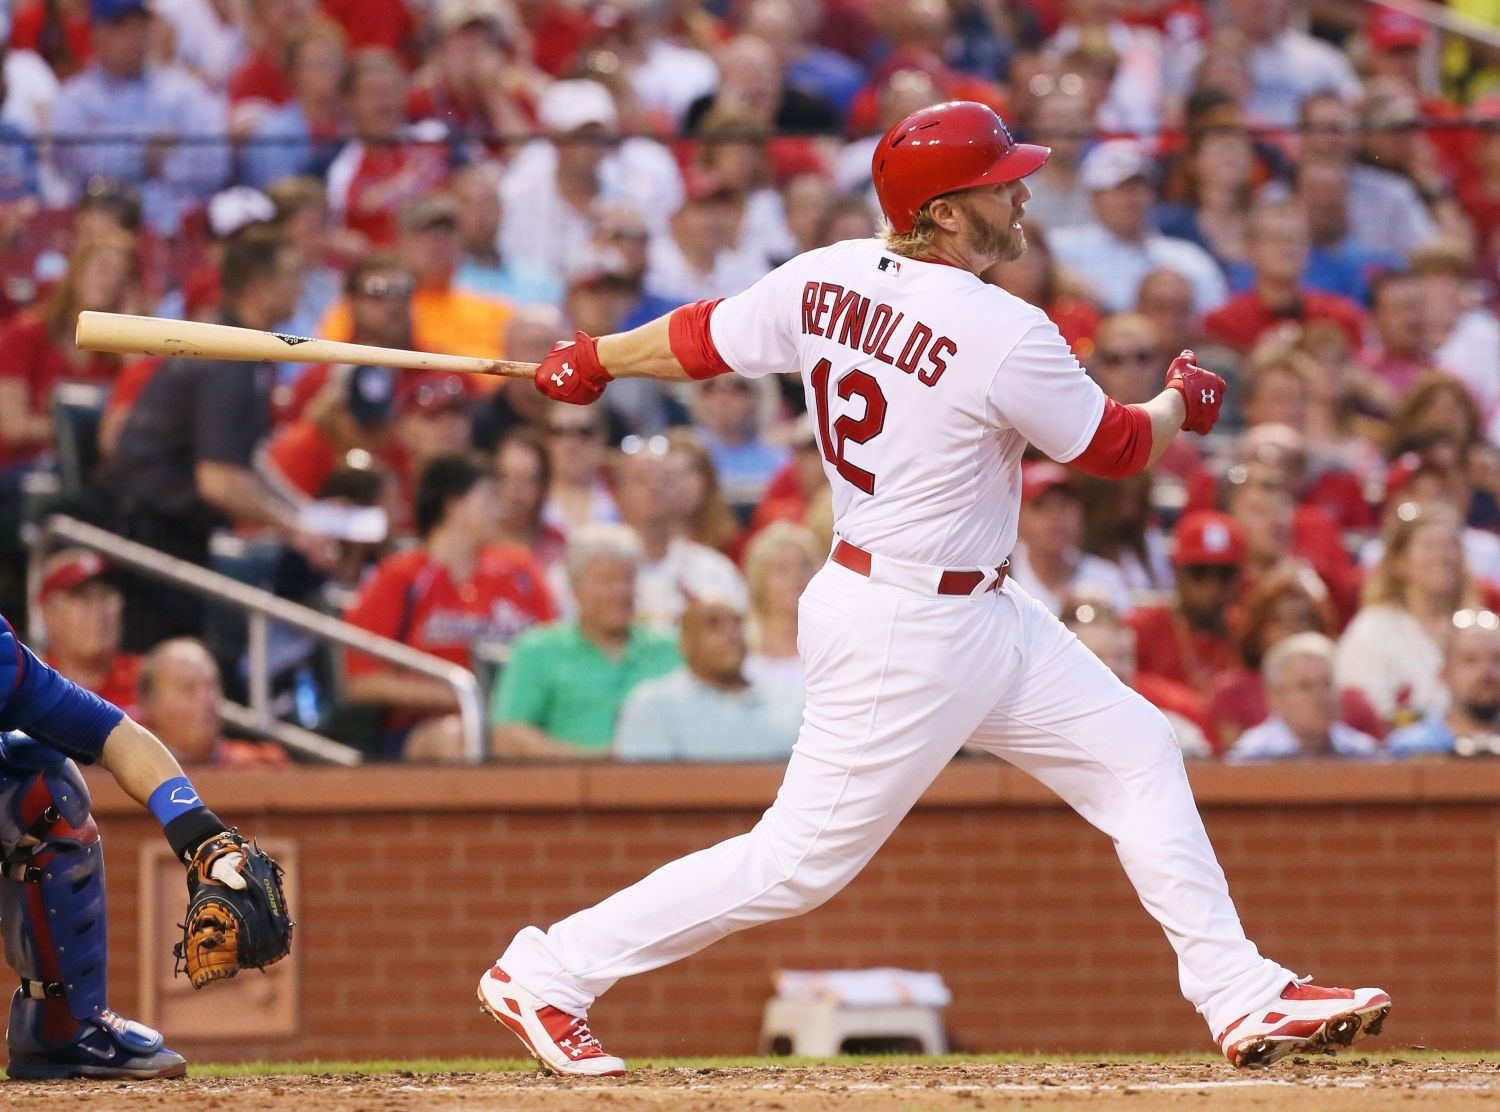 Bernie: Cards getting a boost from Reynolds